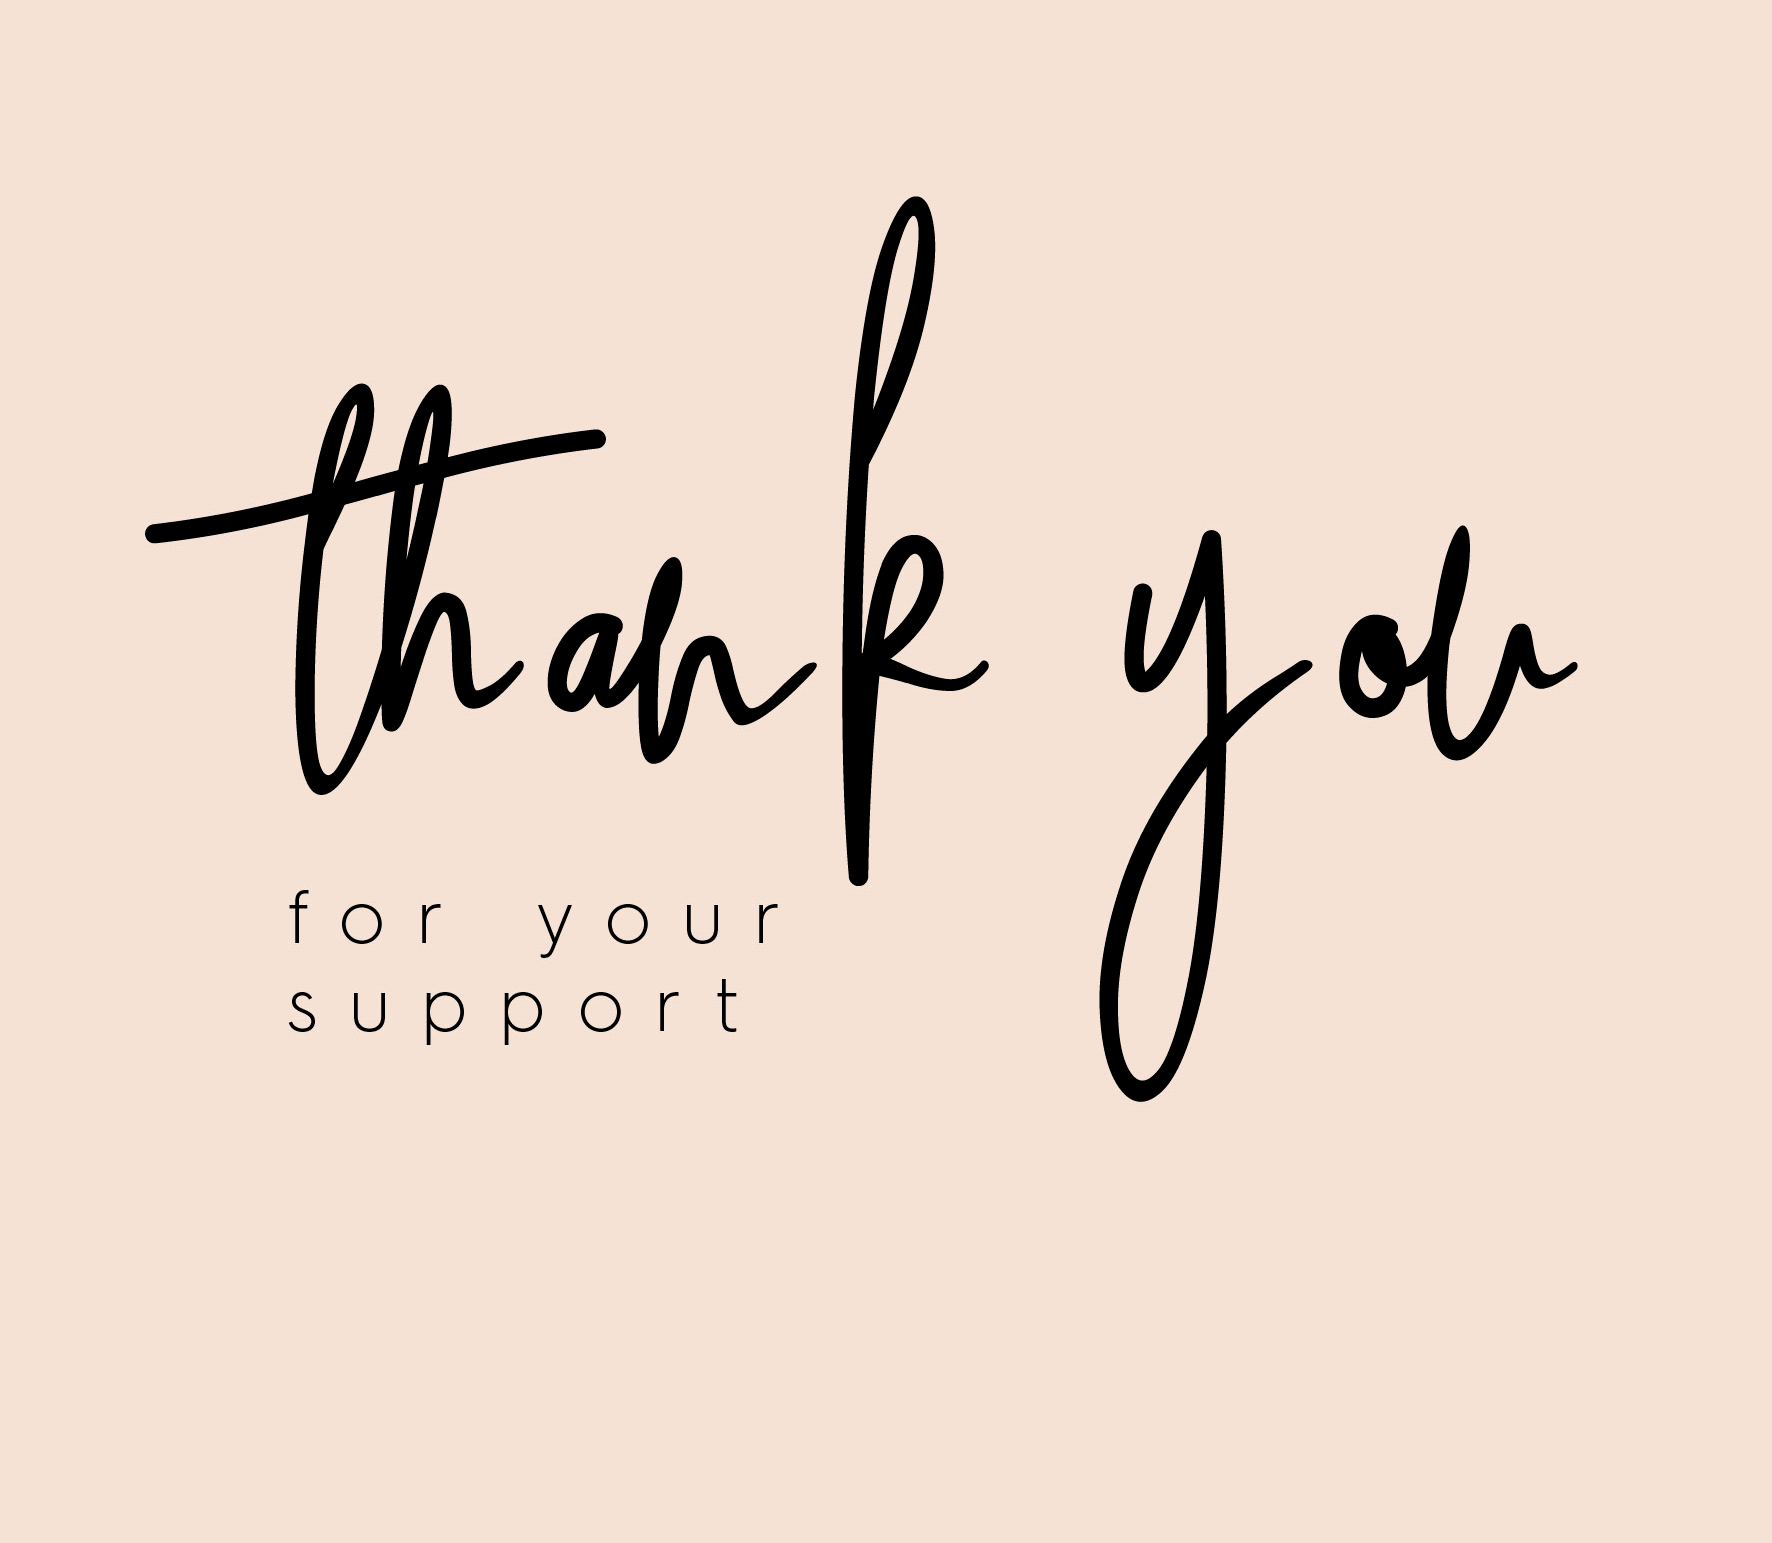 THANK_YOU_FOR_YOU_SUPPORT-1527753661.png